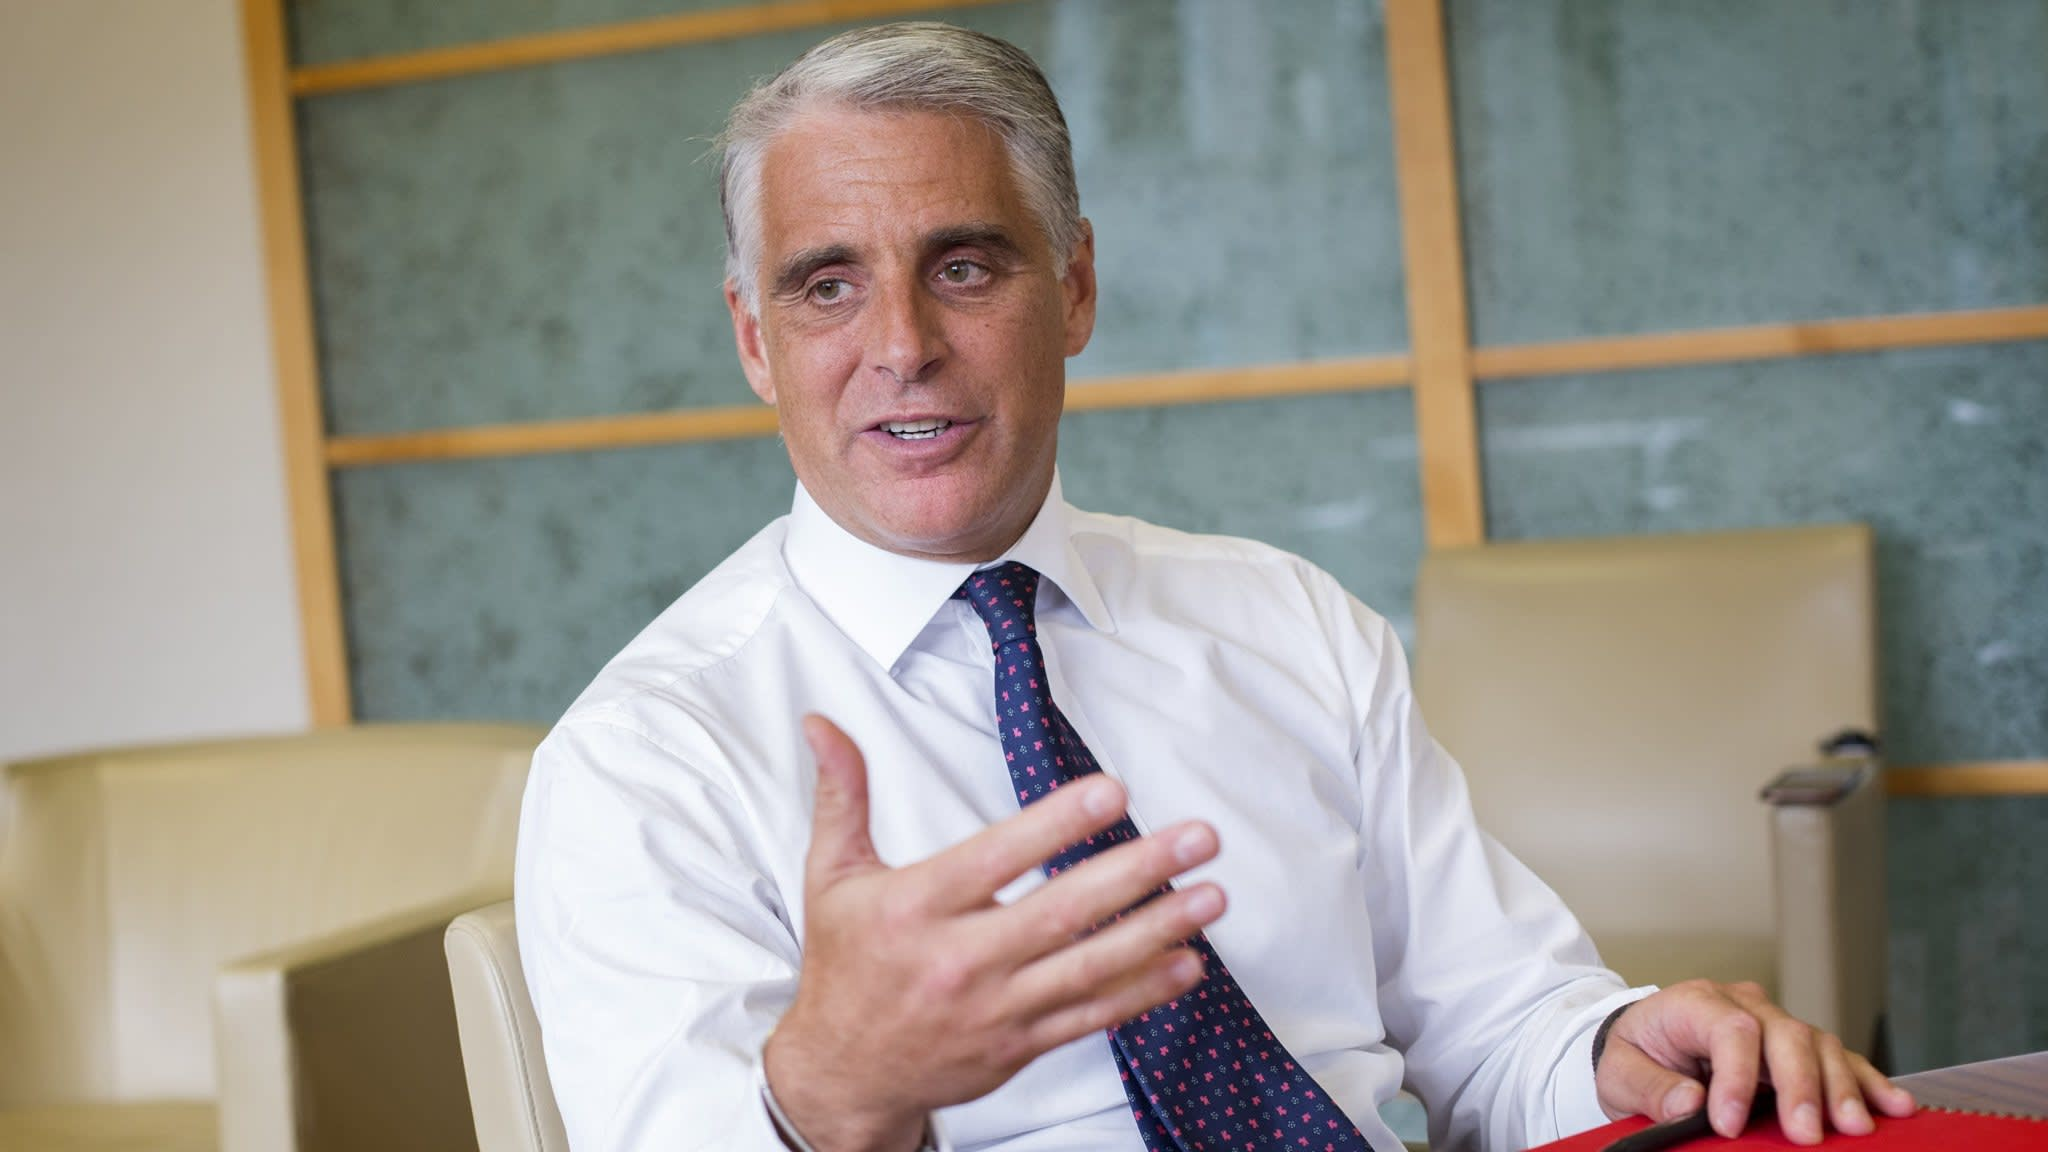 Santander names UBS's Orcel as new chief executive